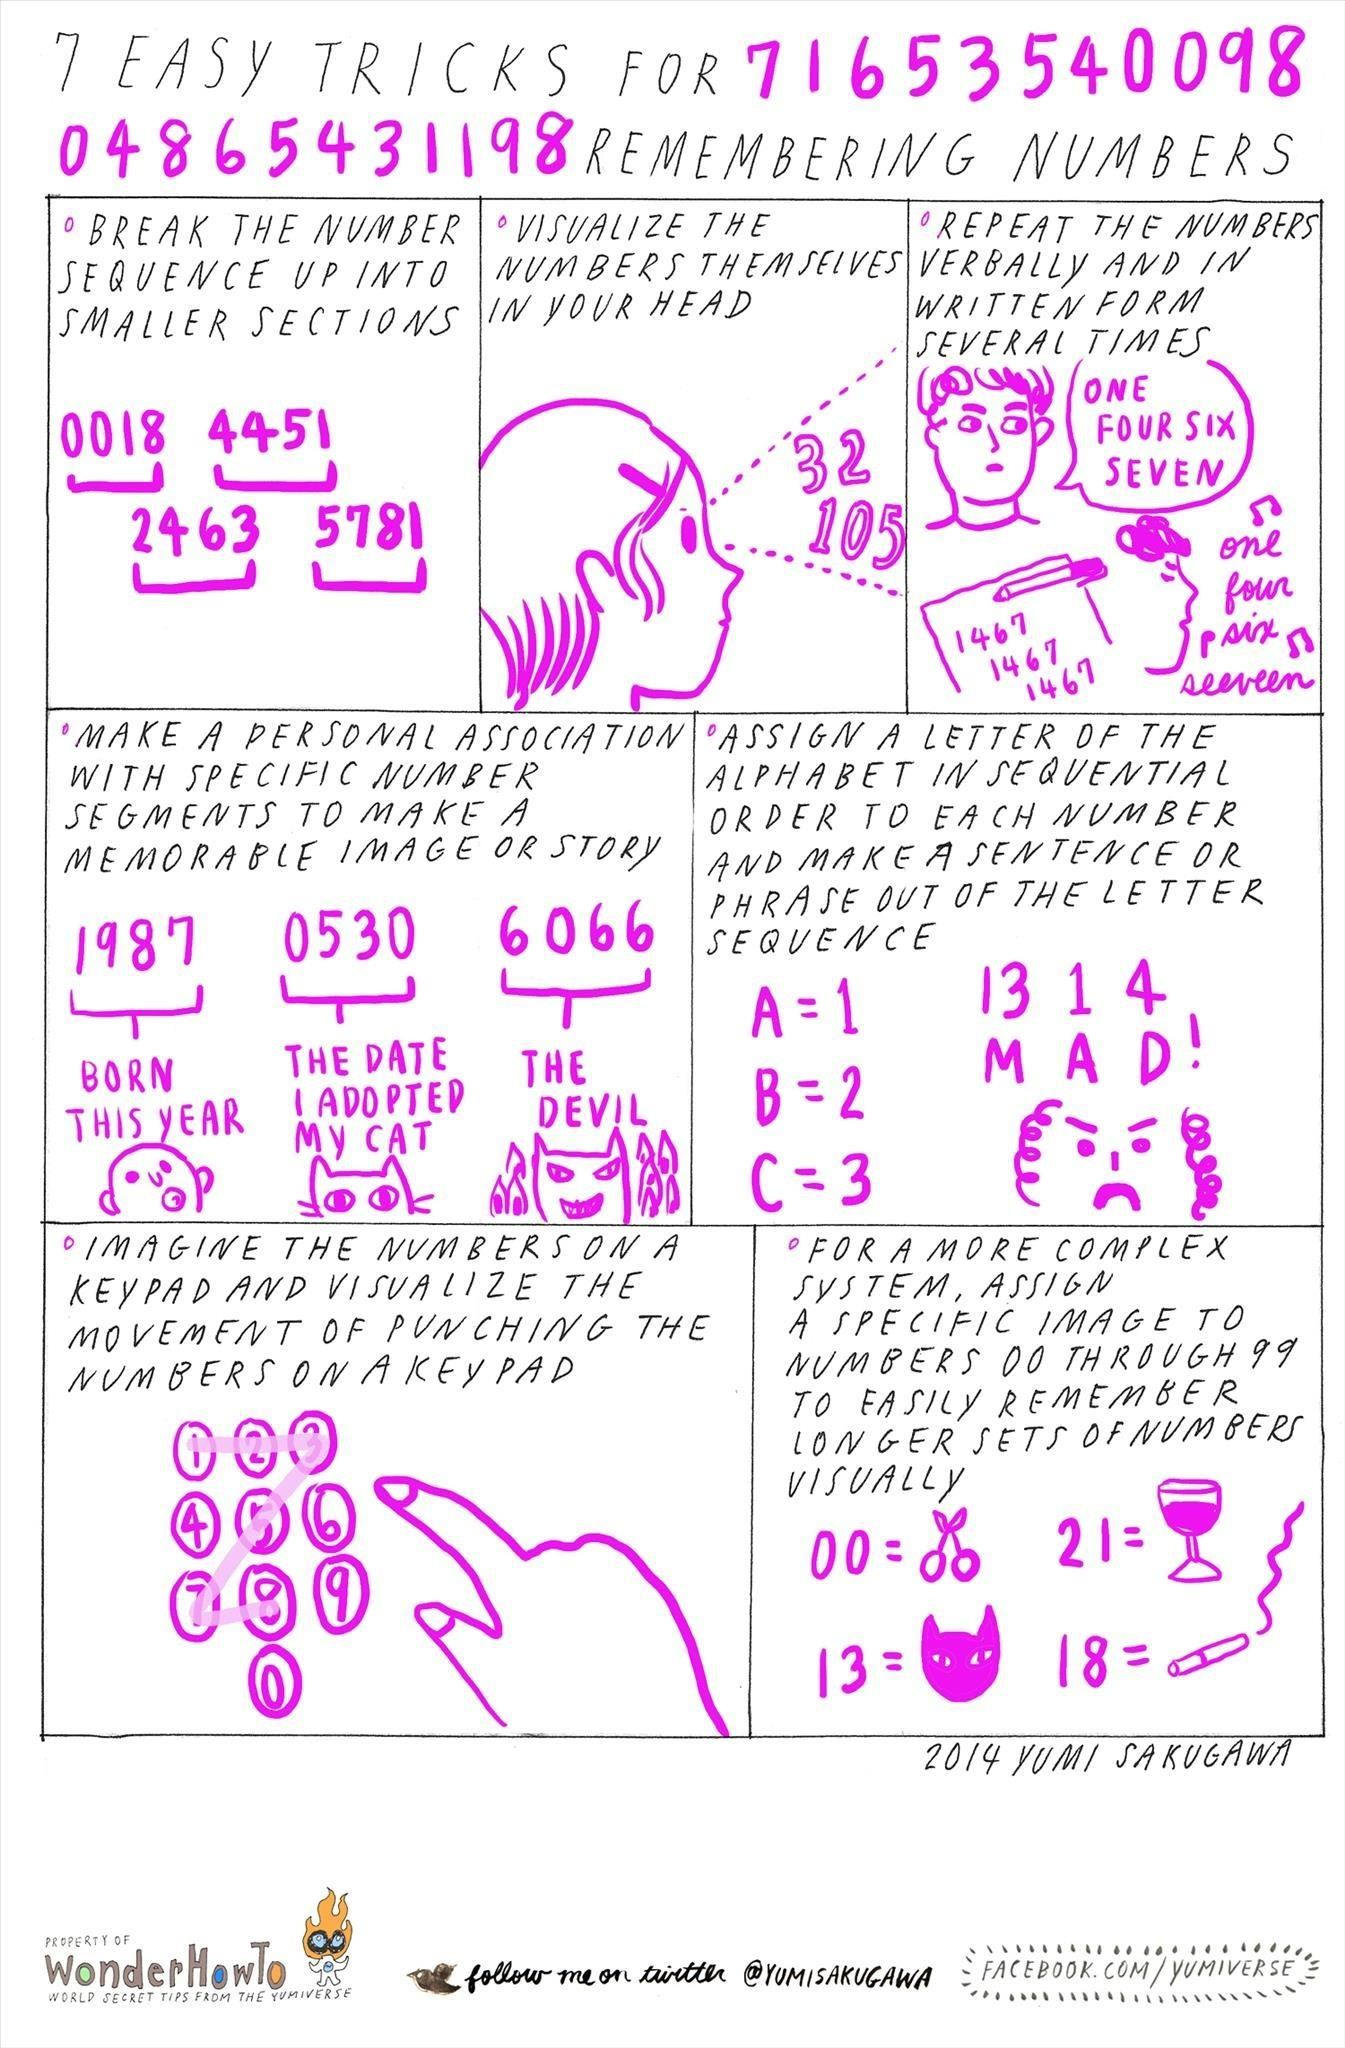 7 Easy Mnemonic Tricks for Remembering Numbers « The Secret